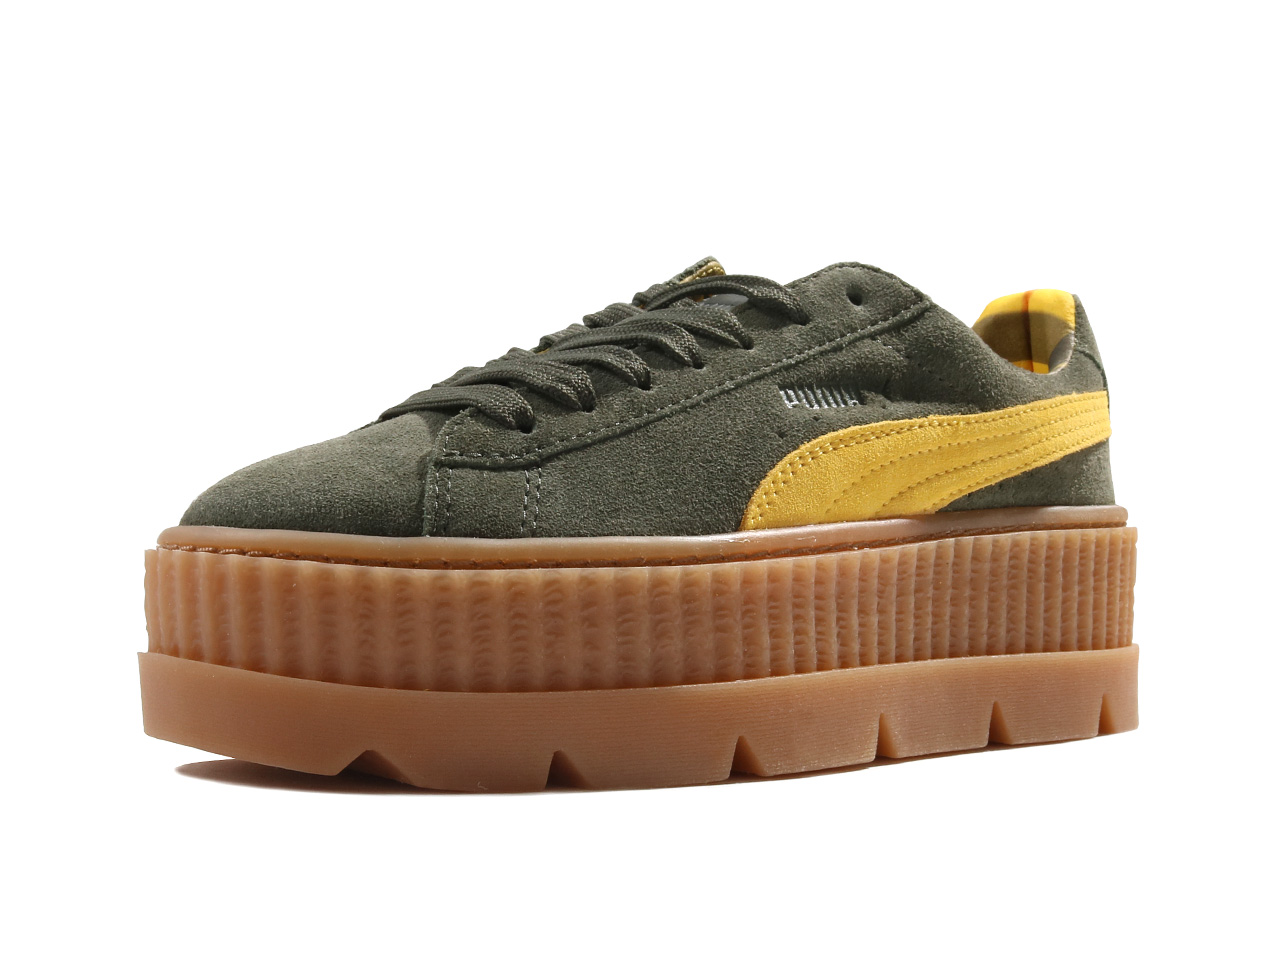 puma_fencty_cleated_creeper_suede_wn_s_366268_01